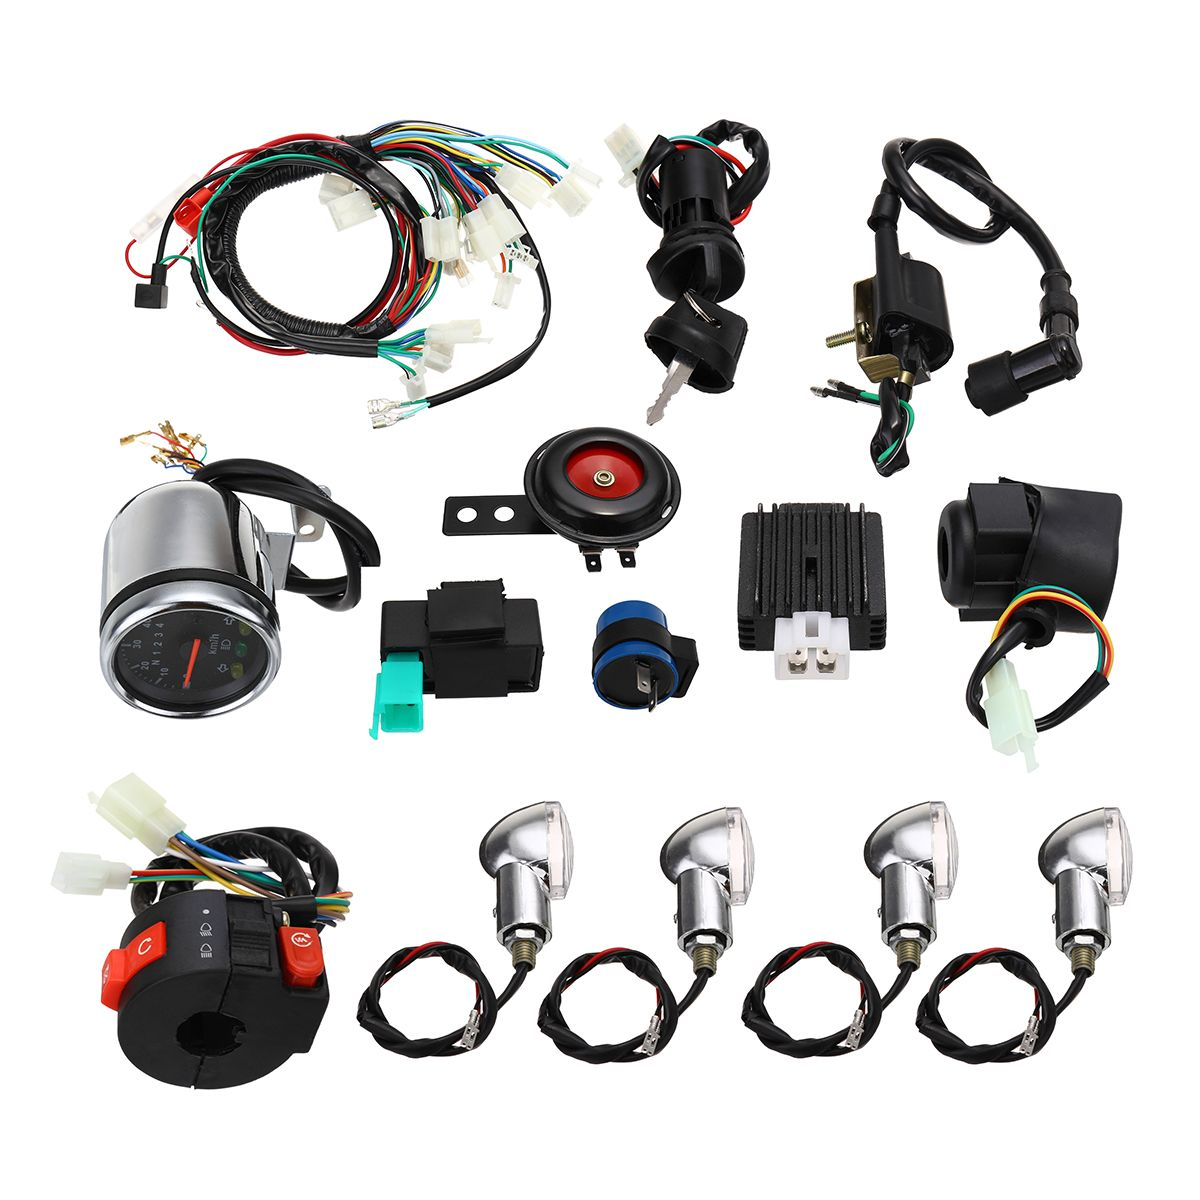 us 53 99 full electric start engine wiring harness loom for cdi 110cc 125cc quad bike atv full electric start engine wiring harness loom cc cc  [ 1200 x 1200 Pixel ]